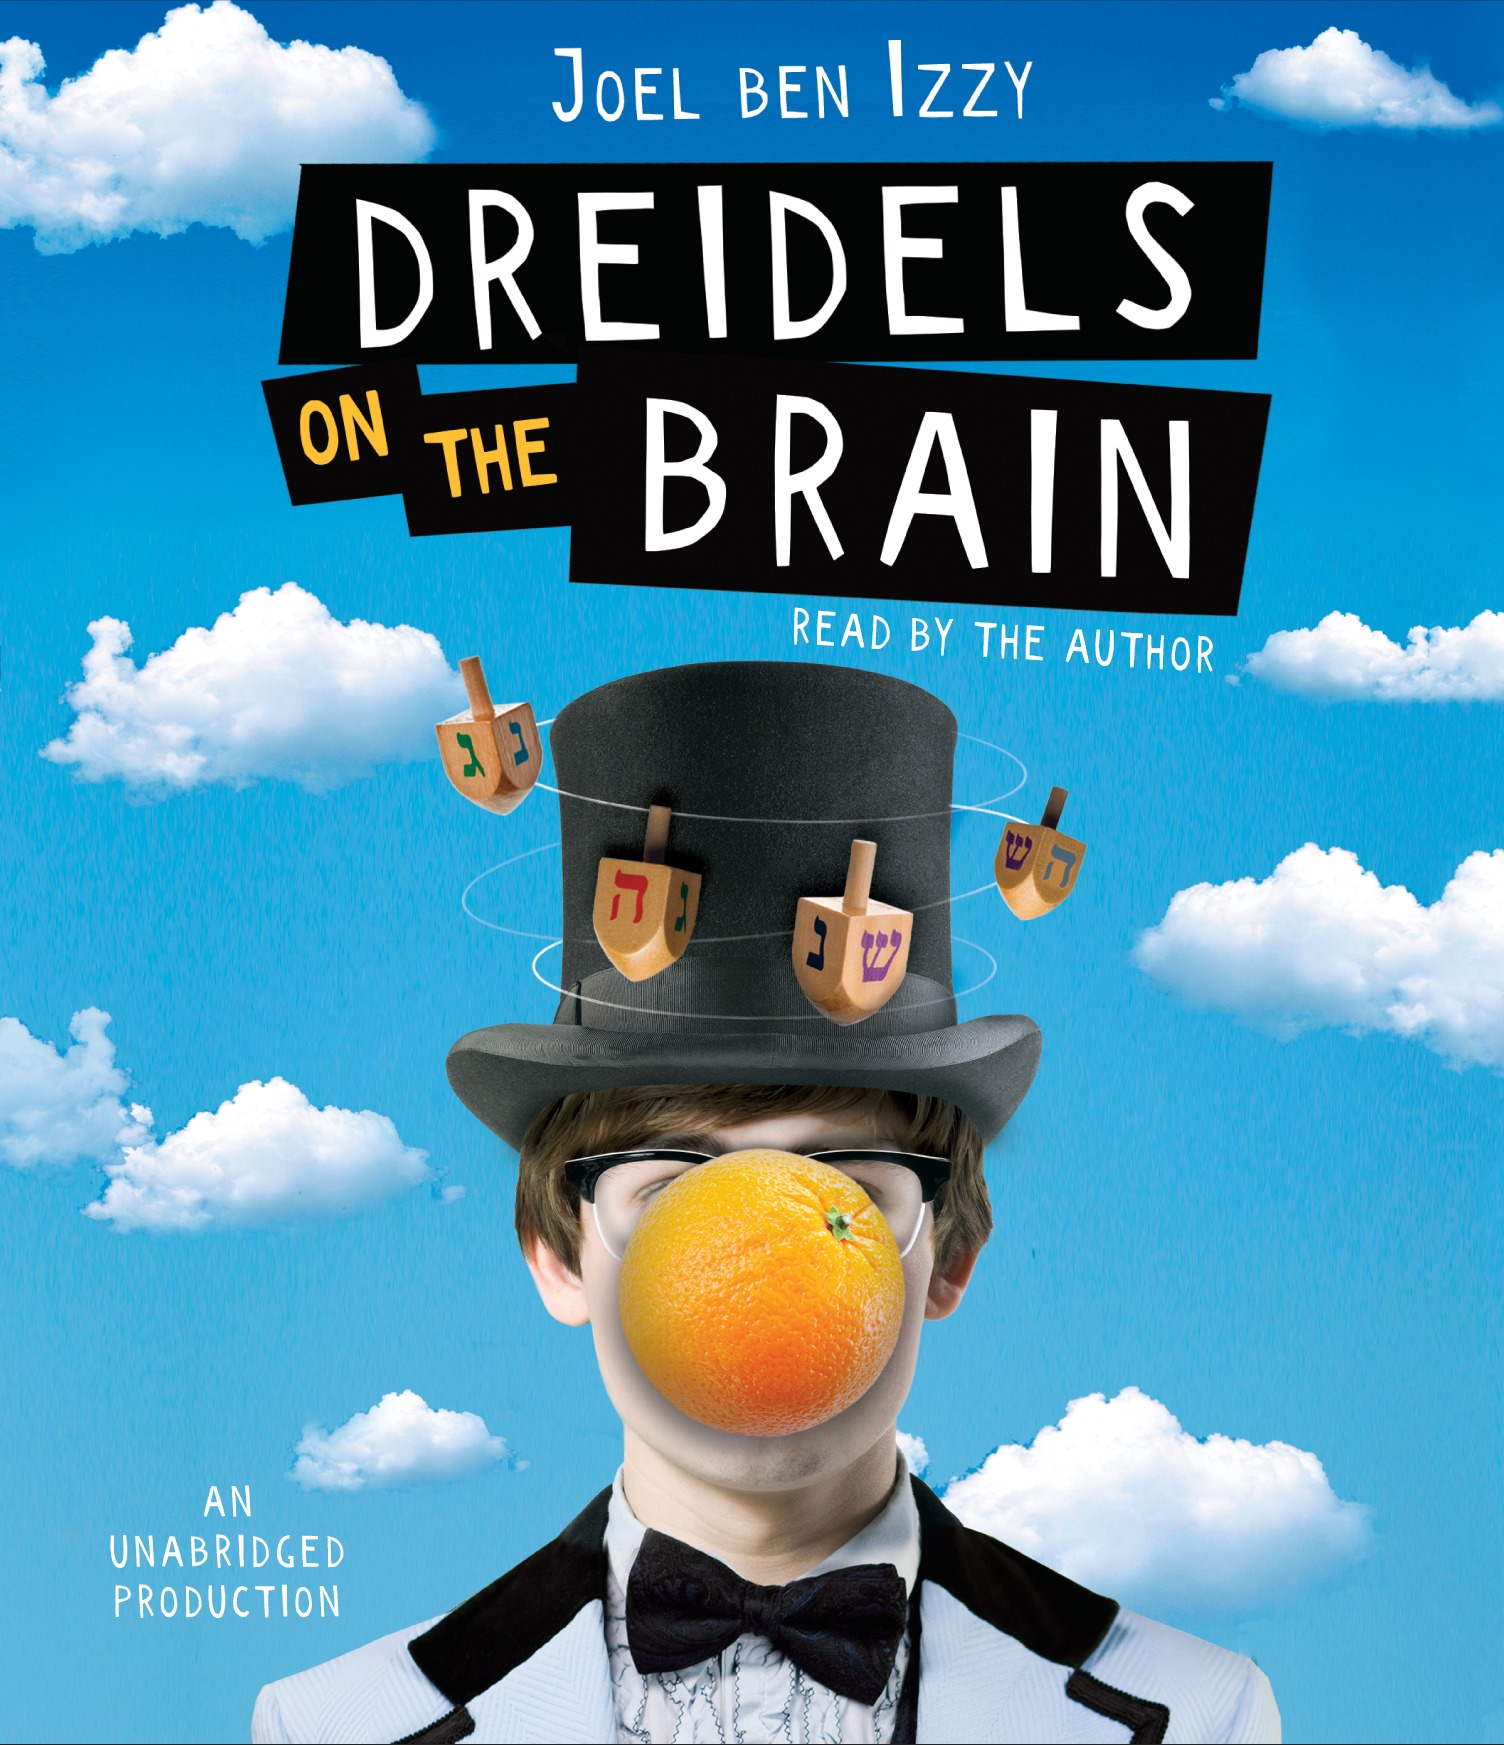 Dreidels on the Brain.